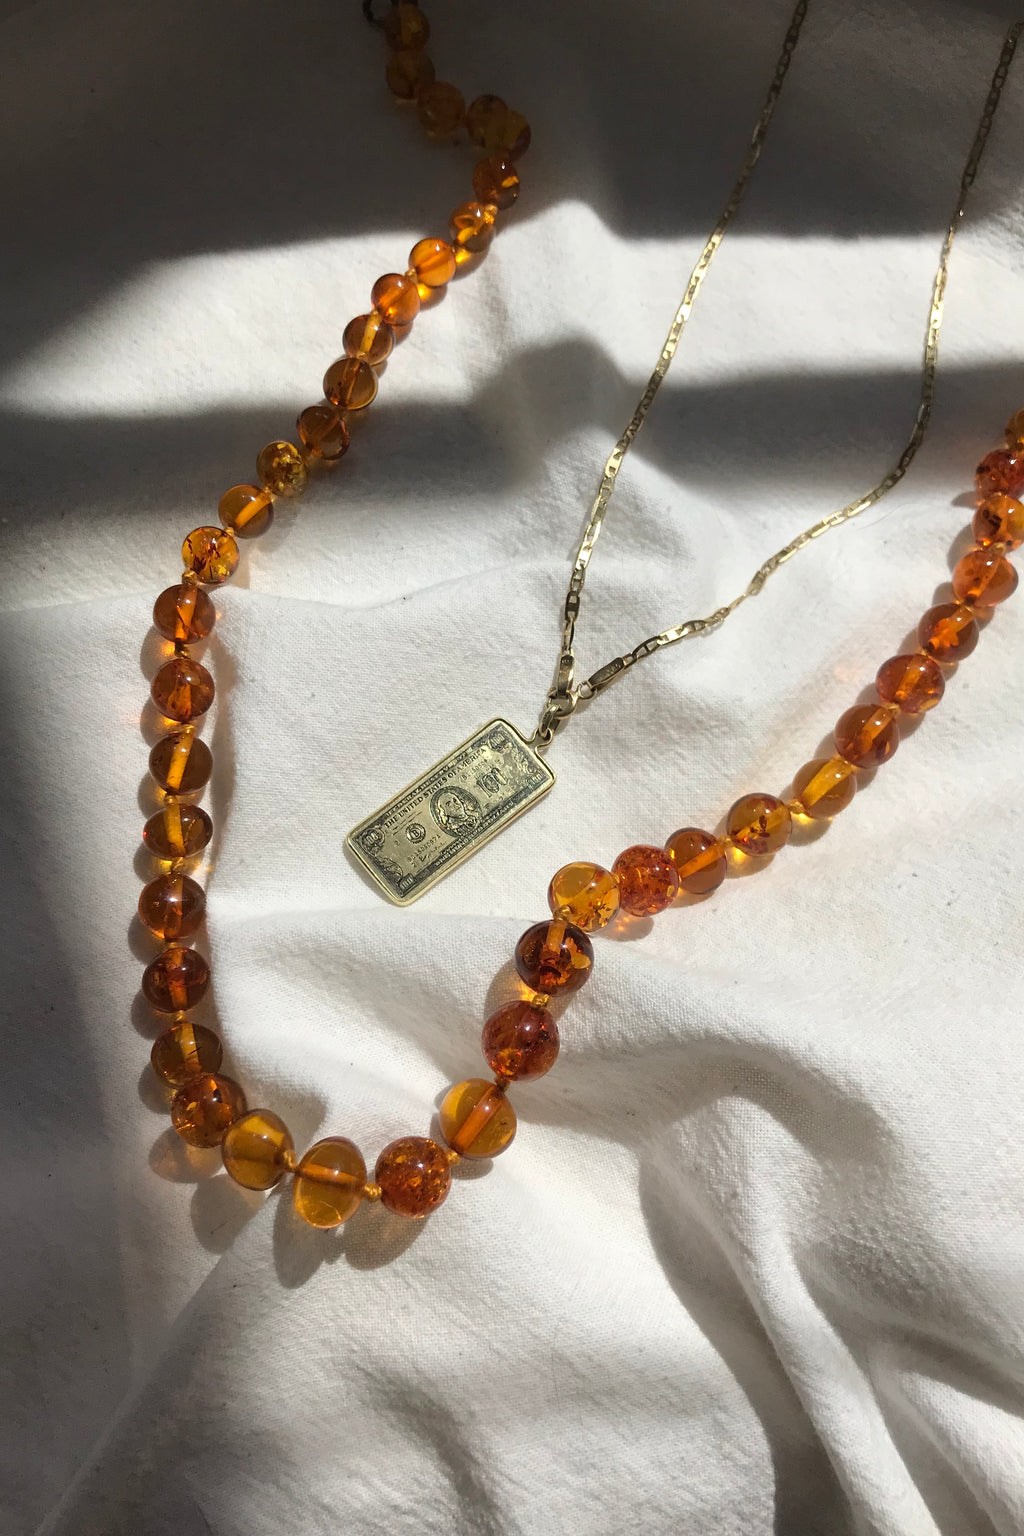 Vintage Kitsch 1970s Plastic Faux Amber Beaded Necklace